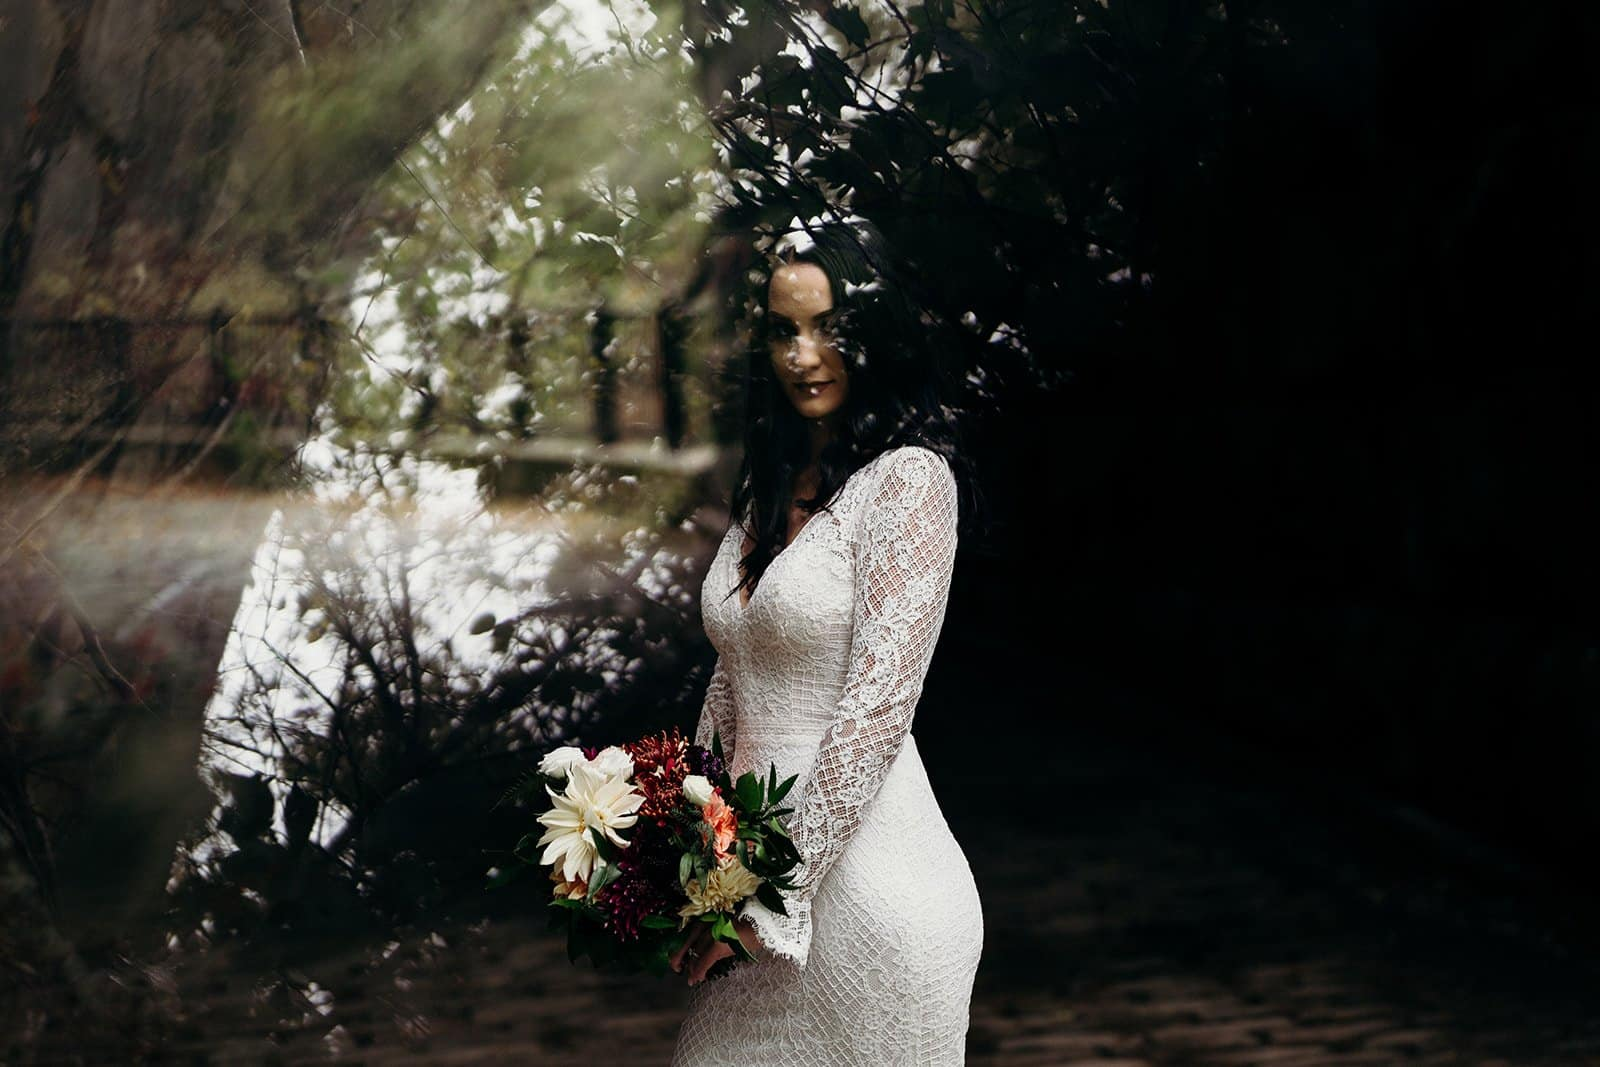 Bride poses while holding bouquet